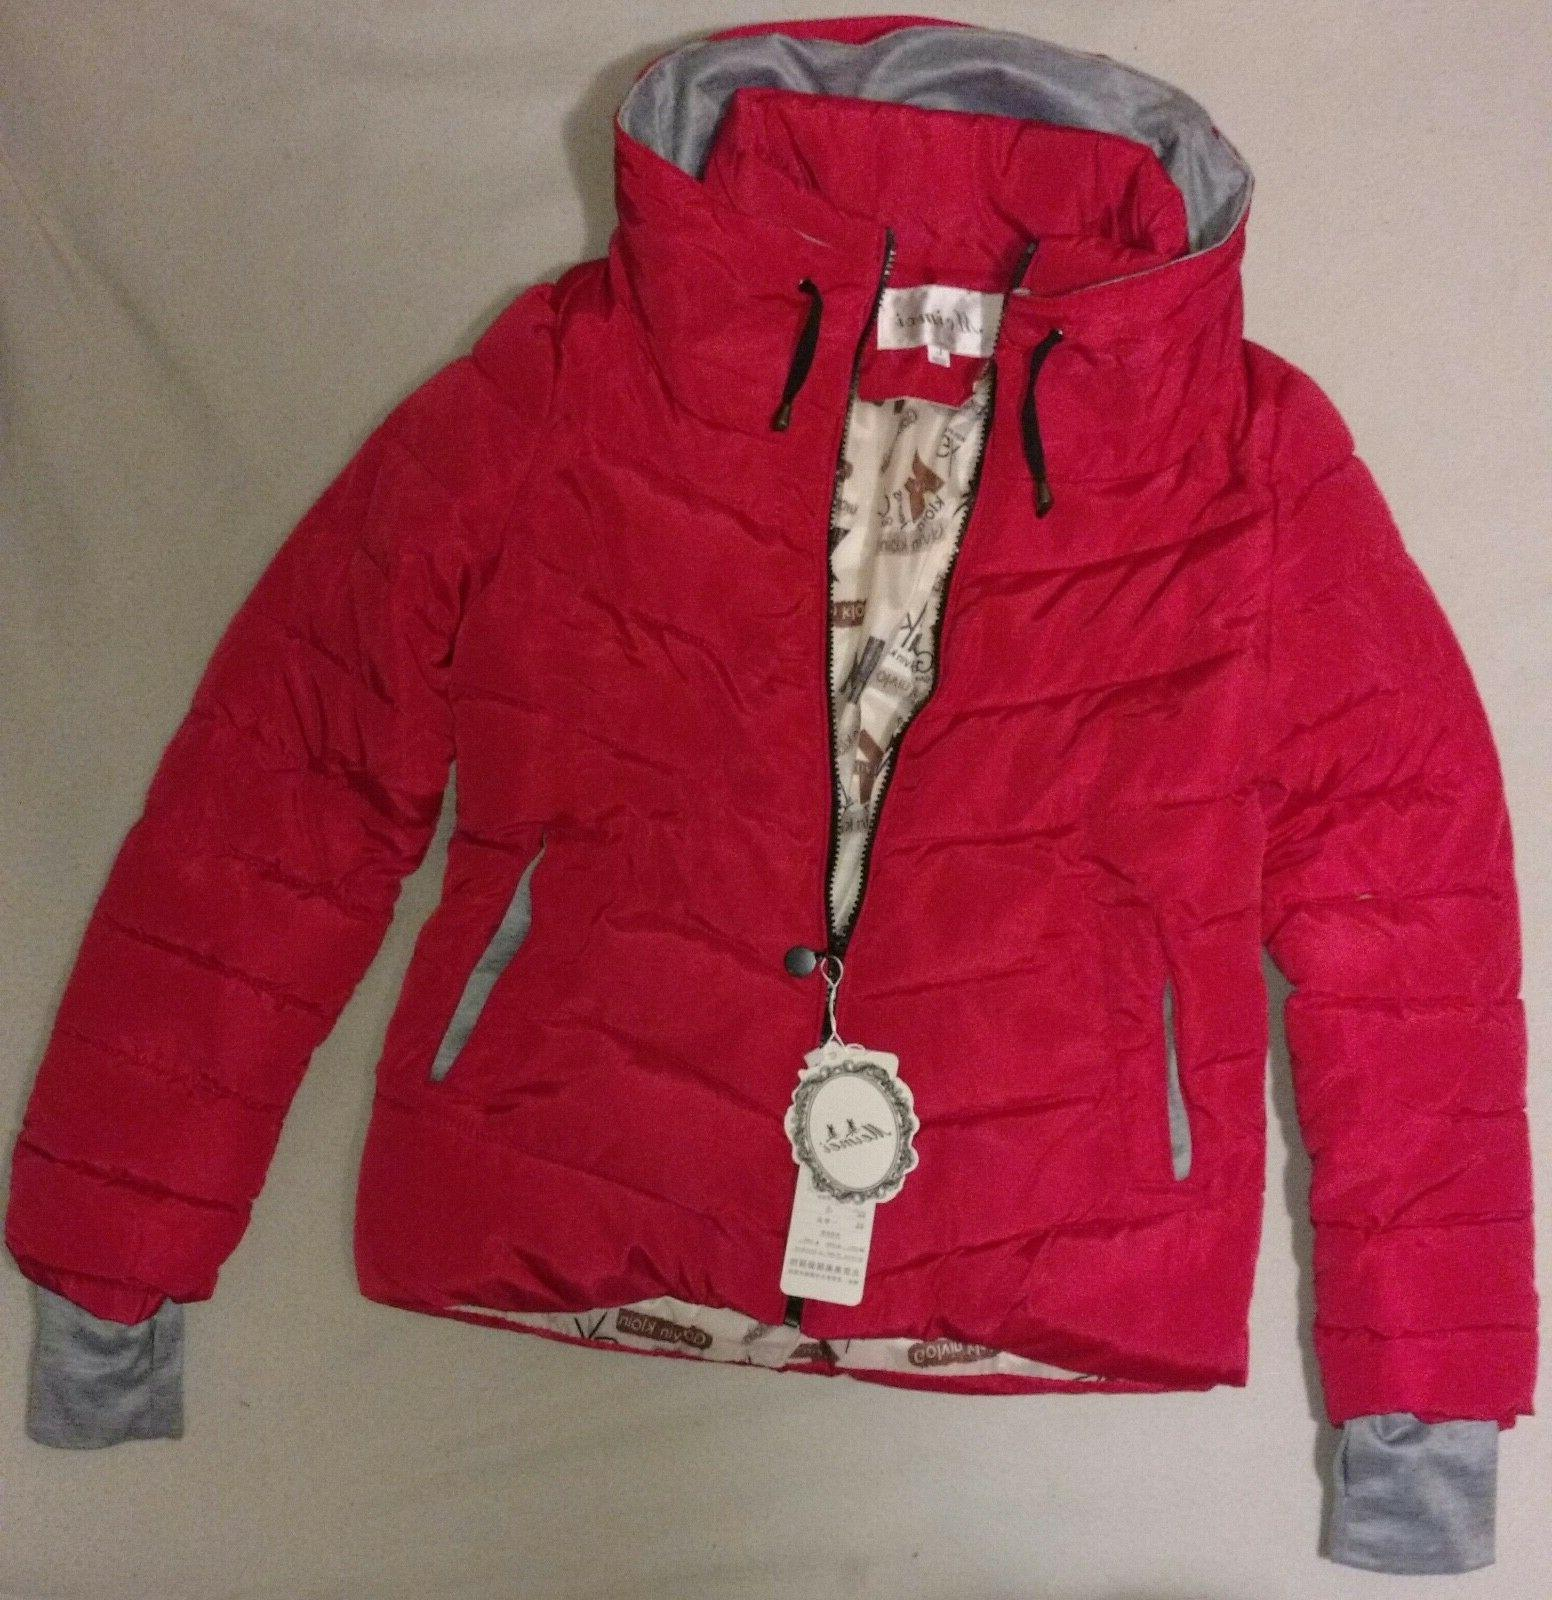 Children's Size brand  Ski Type coat color